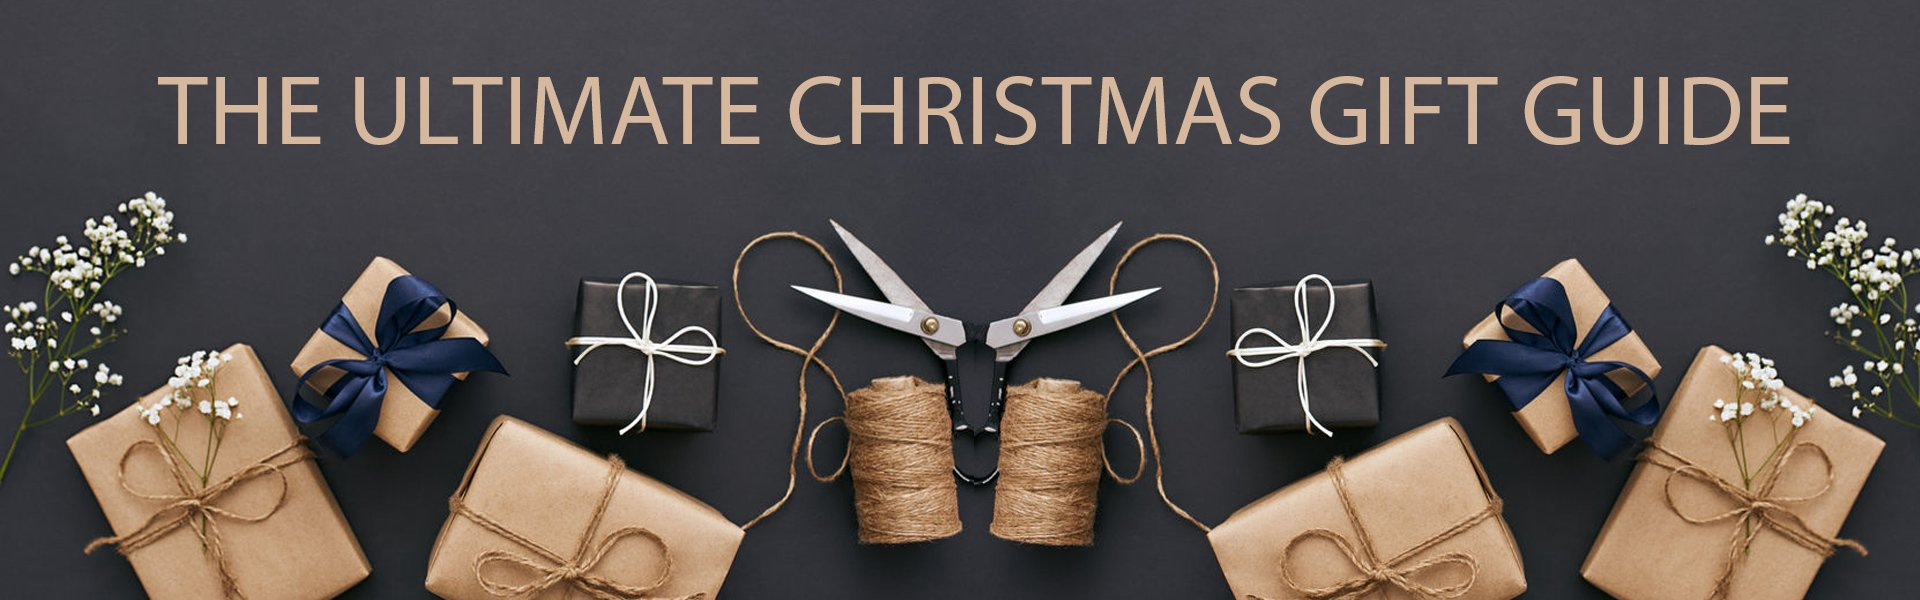 The Ultimate Christmas Gift Guide banner